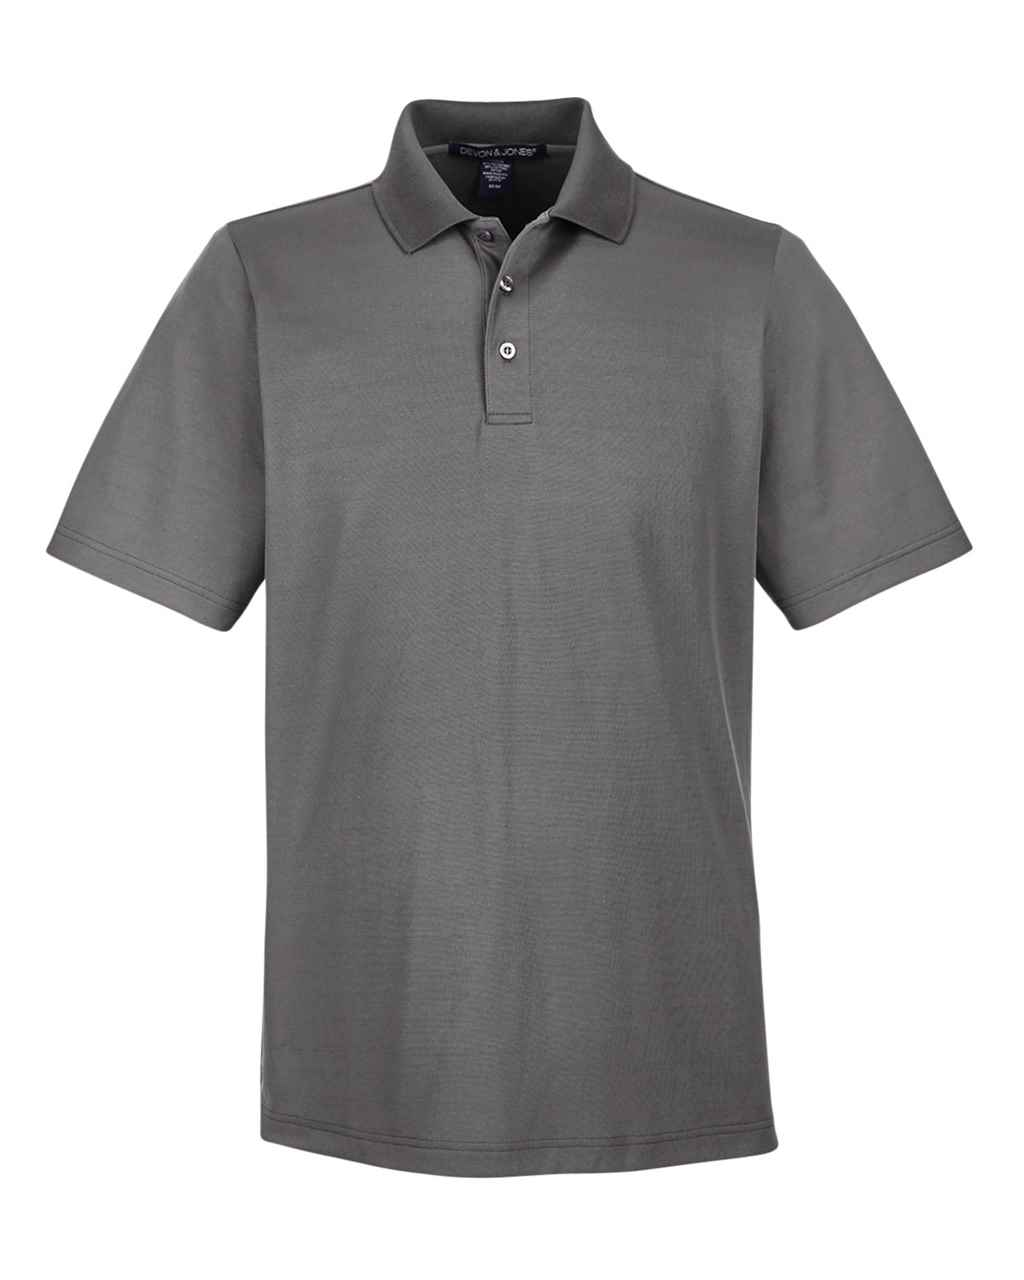 Picture of Crownlux Performance Plaited Short Sleeve Polo